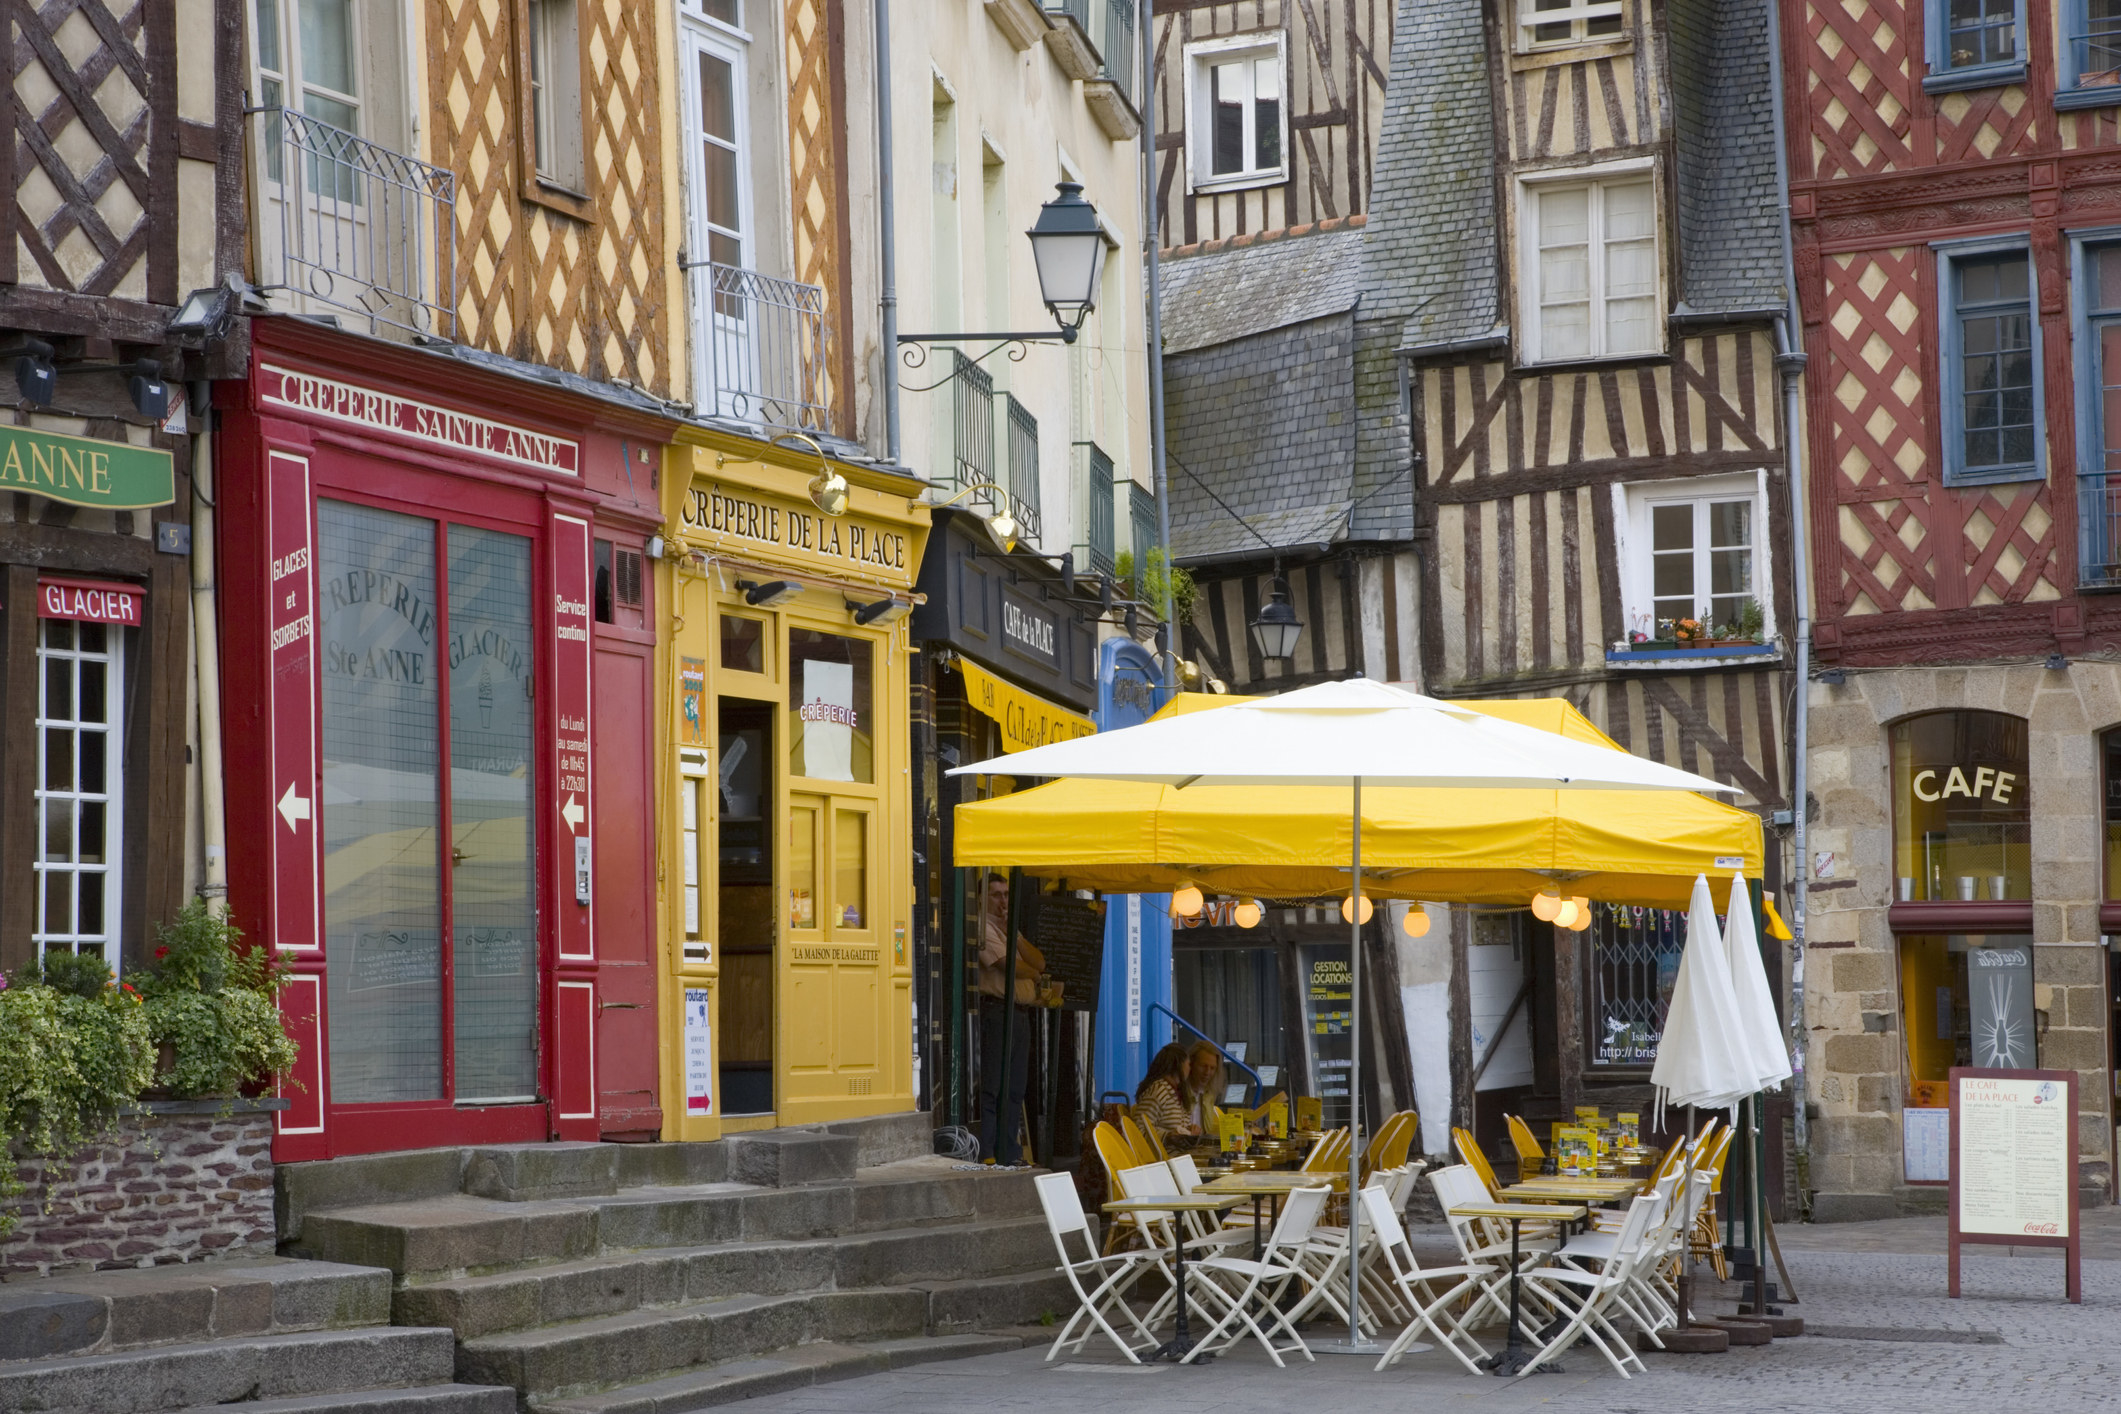 Colorful buildings and a cafe in a square in Rennes, France.